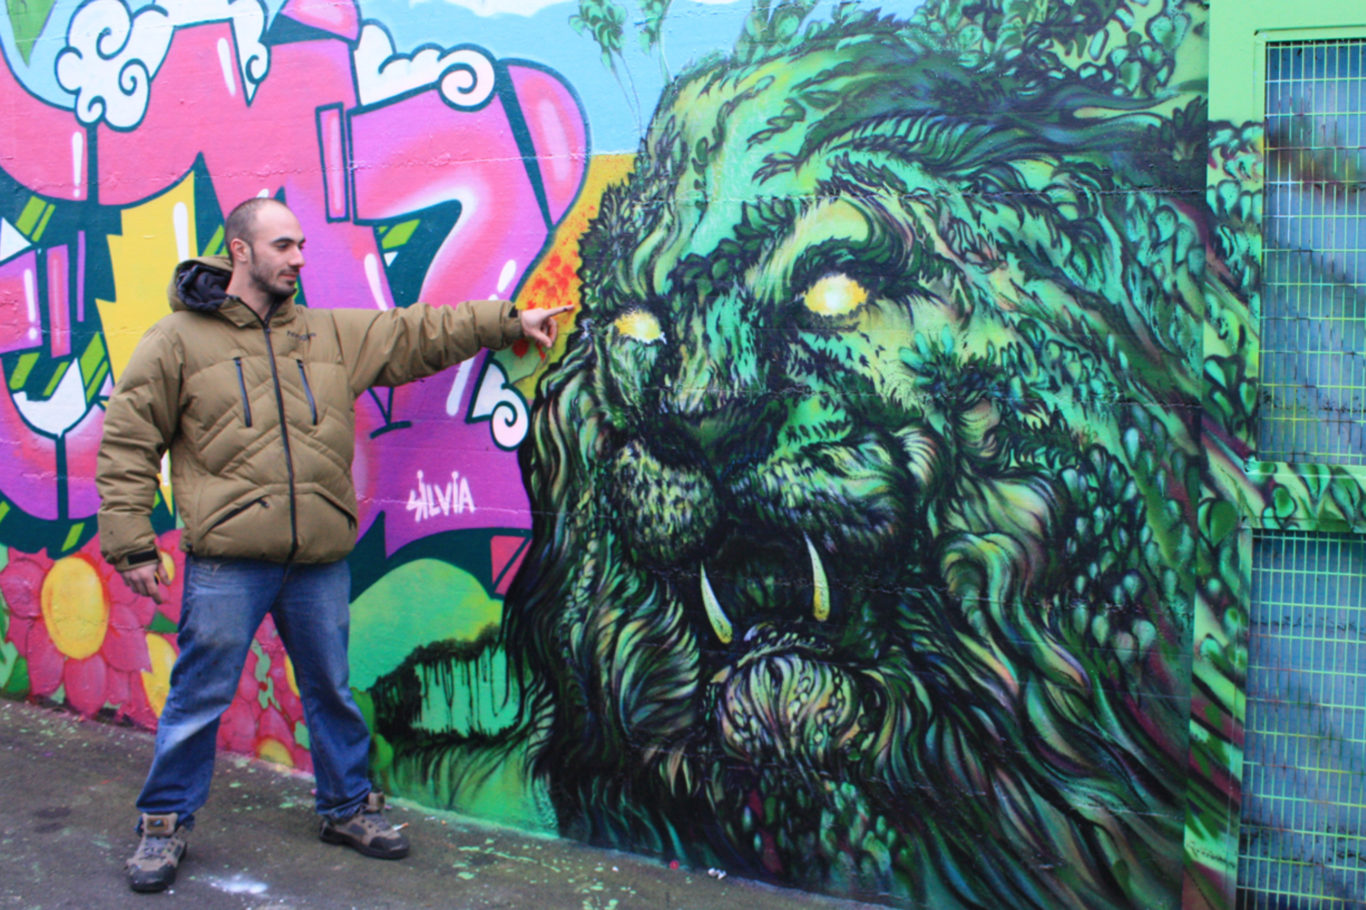 Intervista graffiti writer Impo BN crew